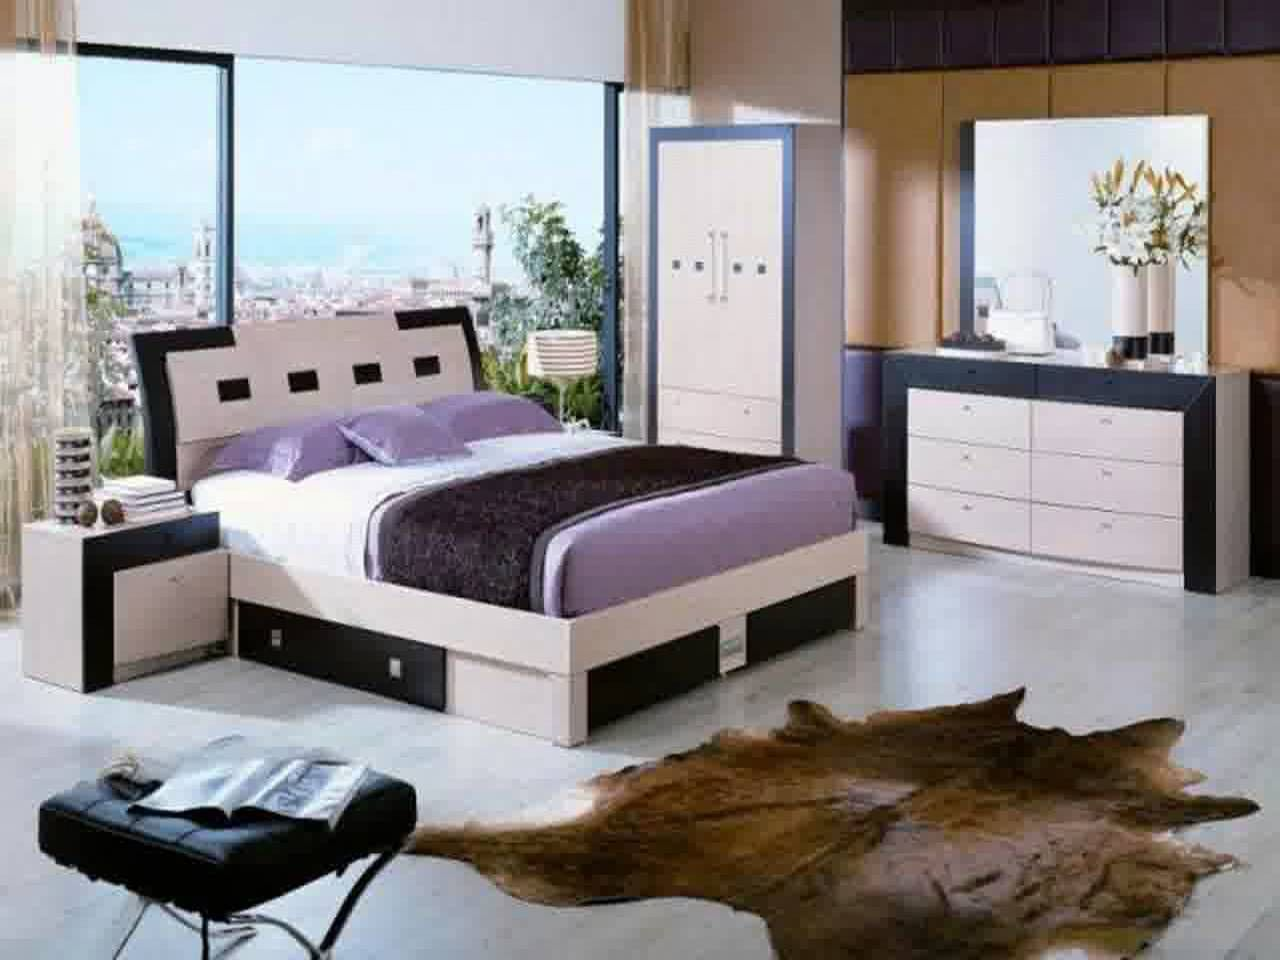 Latest Furniture Design For Bedroom Inspiration Bedroom Furniture Sets Online  Design Ideas 20172018  Pinterest Inspiration Design